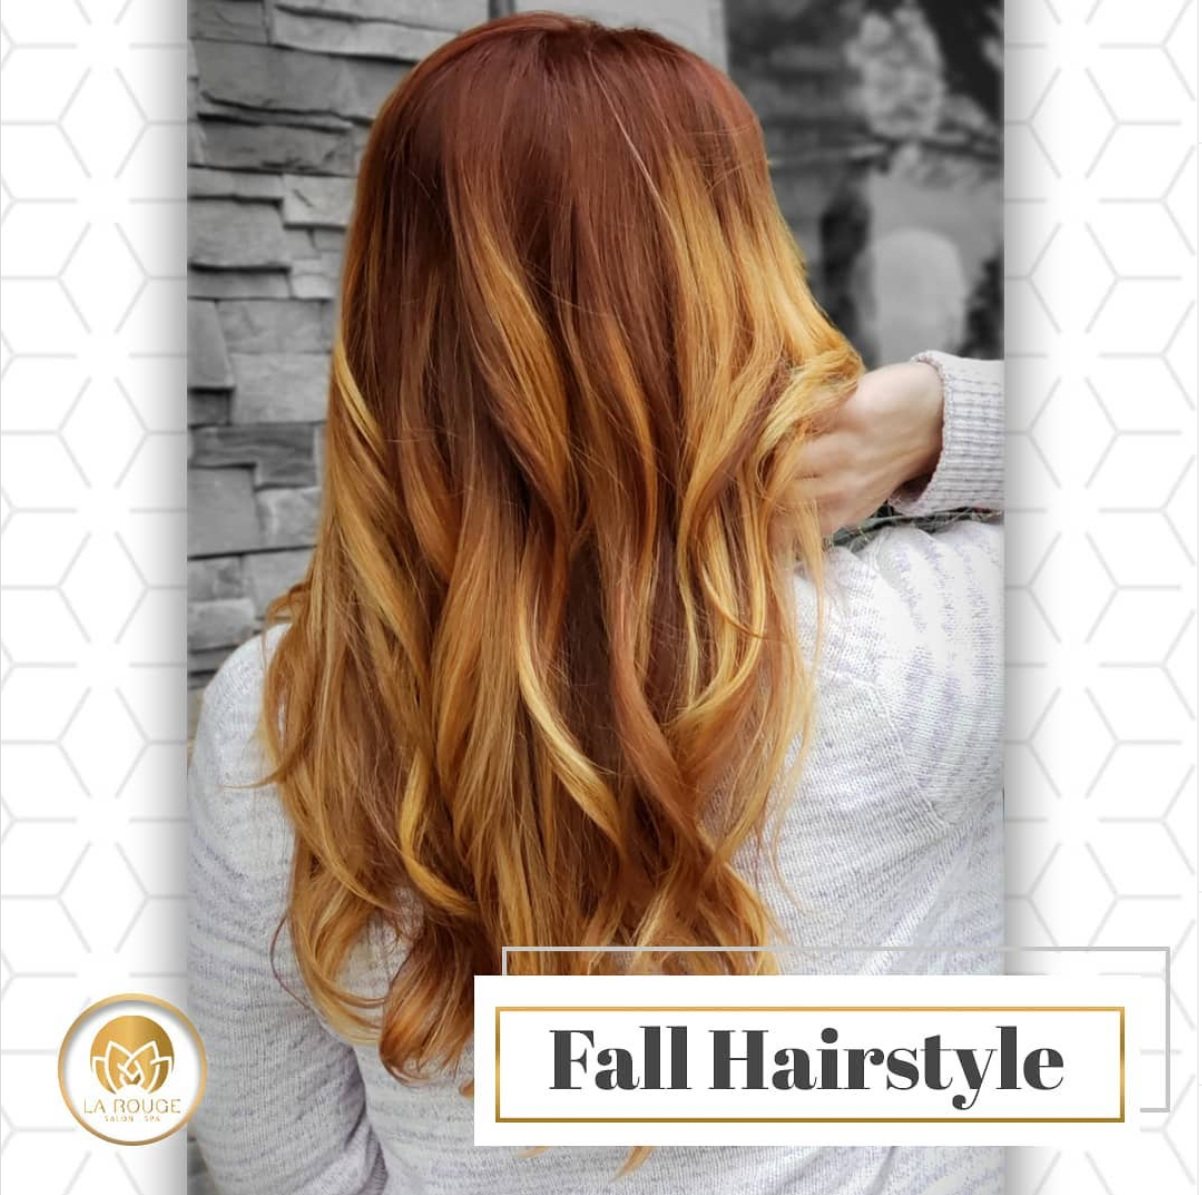 Women's Fall Hairstyle Highlights